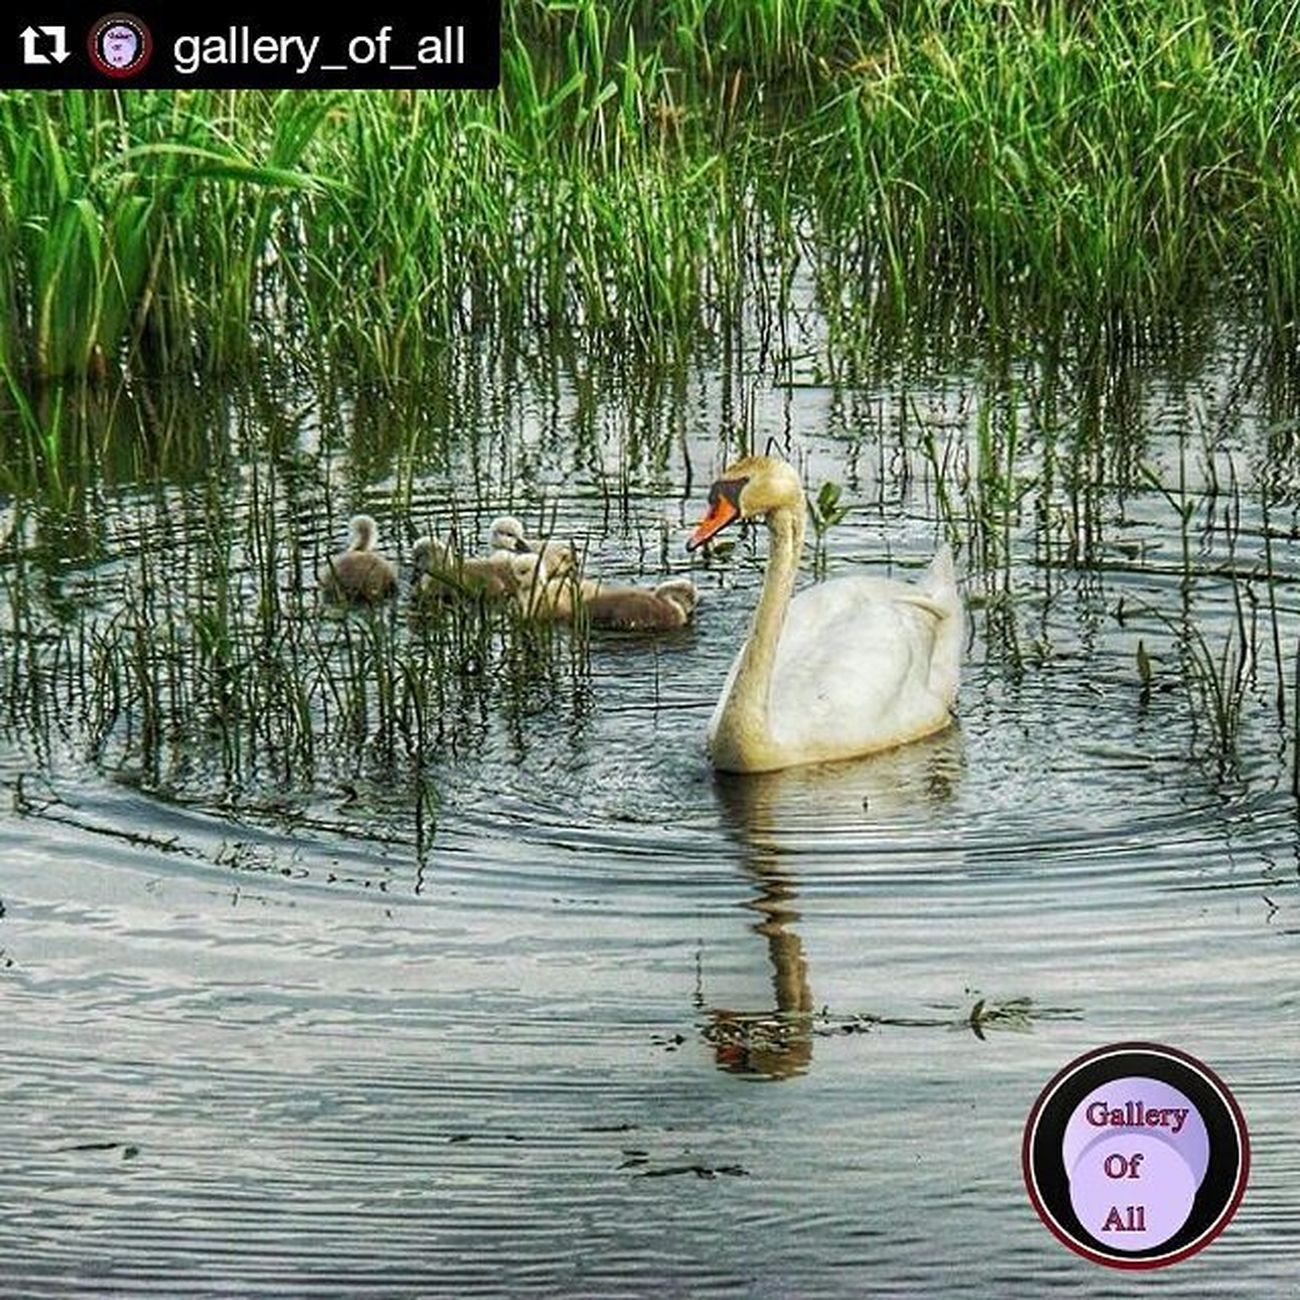 Repost @gallery_of_all with @repostapp ・・・ ❤️ENHORABUENA❤️ ❤️CONGRATULATIONS❤️ ~~~~~~~~~~~~~~~~~~~~ . Found/Adm: @pilarm28 y @loligoam . Member: @hubdirectory 🌍 ~~~~~~~~~~~~ 🌟THIS GREAT PHOTO BY :🌟 . 🏆👉@jeanphillipbrulls👈🏆 ~~~~~~~~~~~~~~~~~~~~~~~~~~~~~~~~ . .Selected By / Seleccionada Por: ✨@pilarm28 y @loligoam✨ . 〰〰〰〰〰〰〰〰〰〰〰〰〰 . 🌇🏫❤️🌙😍🌎😊 ~~~~~~~~~~~~~~~~~~~~~~~~~~~~~~~~ Recuerda seguir nuestras paginas para optar a menciones. . Gallery_of_all . . Remember To Follow our Page For Mentions. . @gallery_of_all . @gallery_of_splash . @gallery_of_byw . 〰〰〰〰〰〰〰〰〰〰〰〰〰〰〰〰〰〰 Solo fotos originales/Only original 〰〰〰〰〰〰〰〰〰〰〰〰. Frameable Fotoclub_ab Hdr_portugal Coolworld_hdr Hdr_spain Love_hdr_colour Pristine_hdr Stars_hdr Editmoments_hdr H20_natura Lens_lovers_united Hdr_oftheworld Loves_skyandsunset Sunsets_oftheworld Fotofanatics_alltags Best_expression_hdr Ilove_hdr Instaphotomatix Instaamici Yes_hdr Ptk_sky